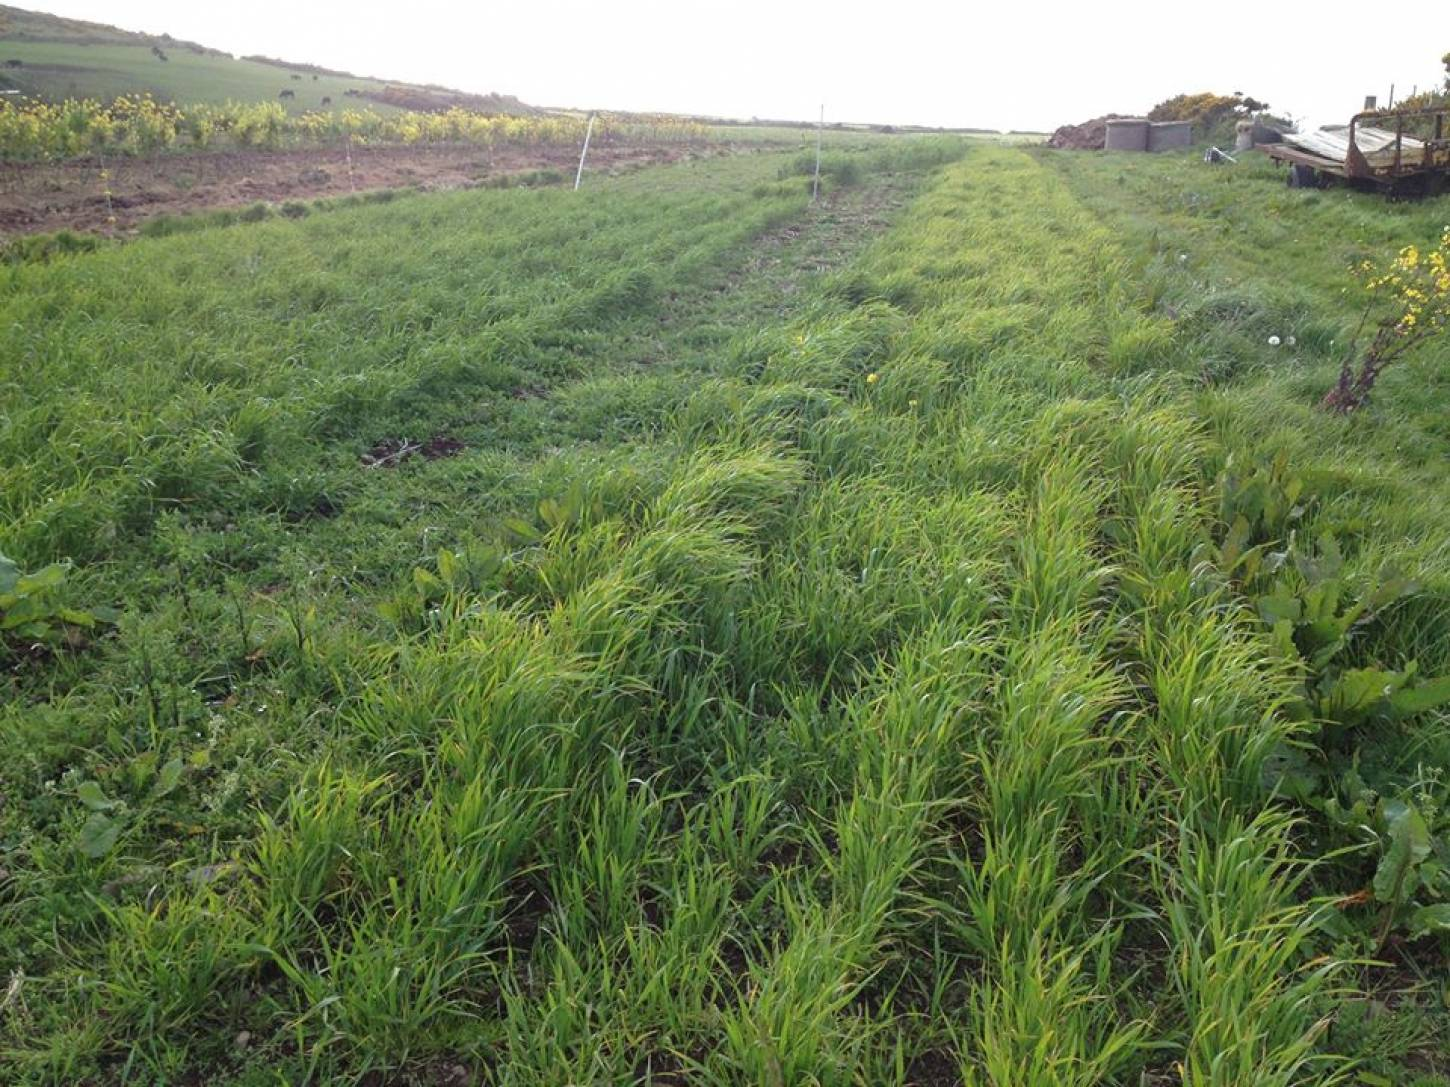 review of cereals sown by Rupert Dunn at <a href='https://www.facebook.com/torthytir' target=_blank>Torth yTir</a> - <a href='' target=_blank>Hen Gymro S70</a> on left and <a href='http://brockwell-bake.org.uk/wheat/search.php?send=1&search=aragon%2003&cn=' target=_blank>Aragon 03</a>   11th May 2015